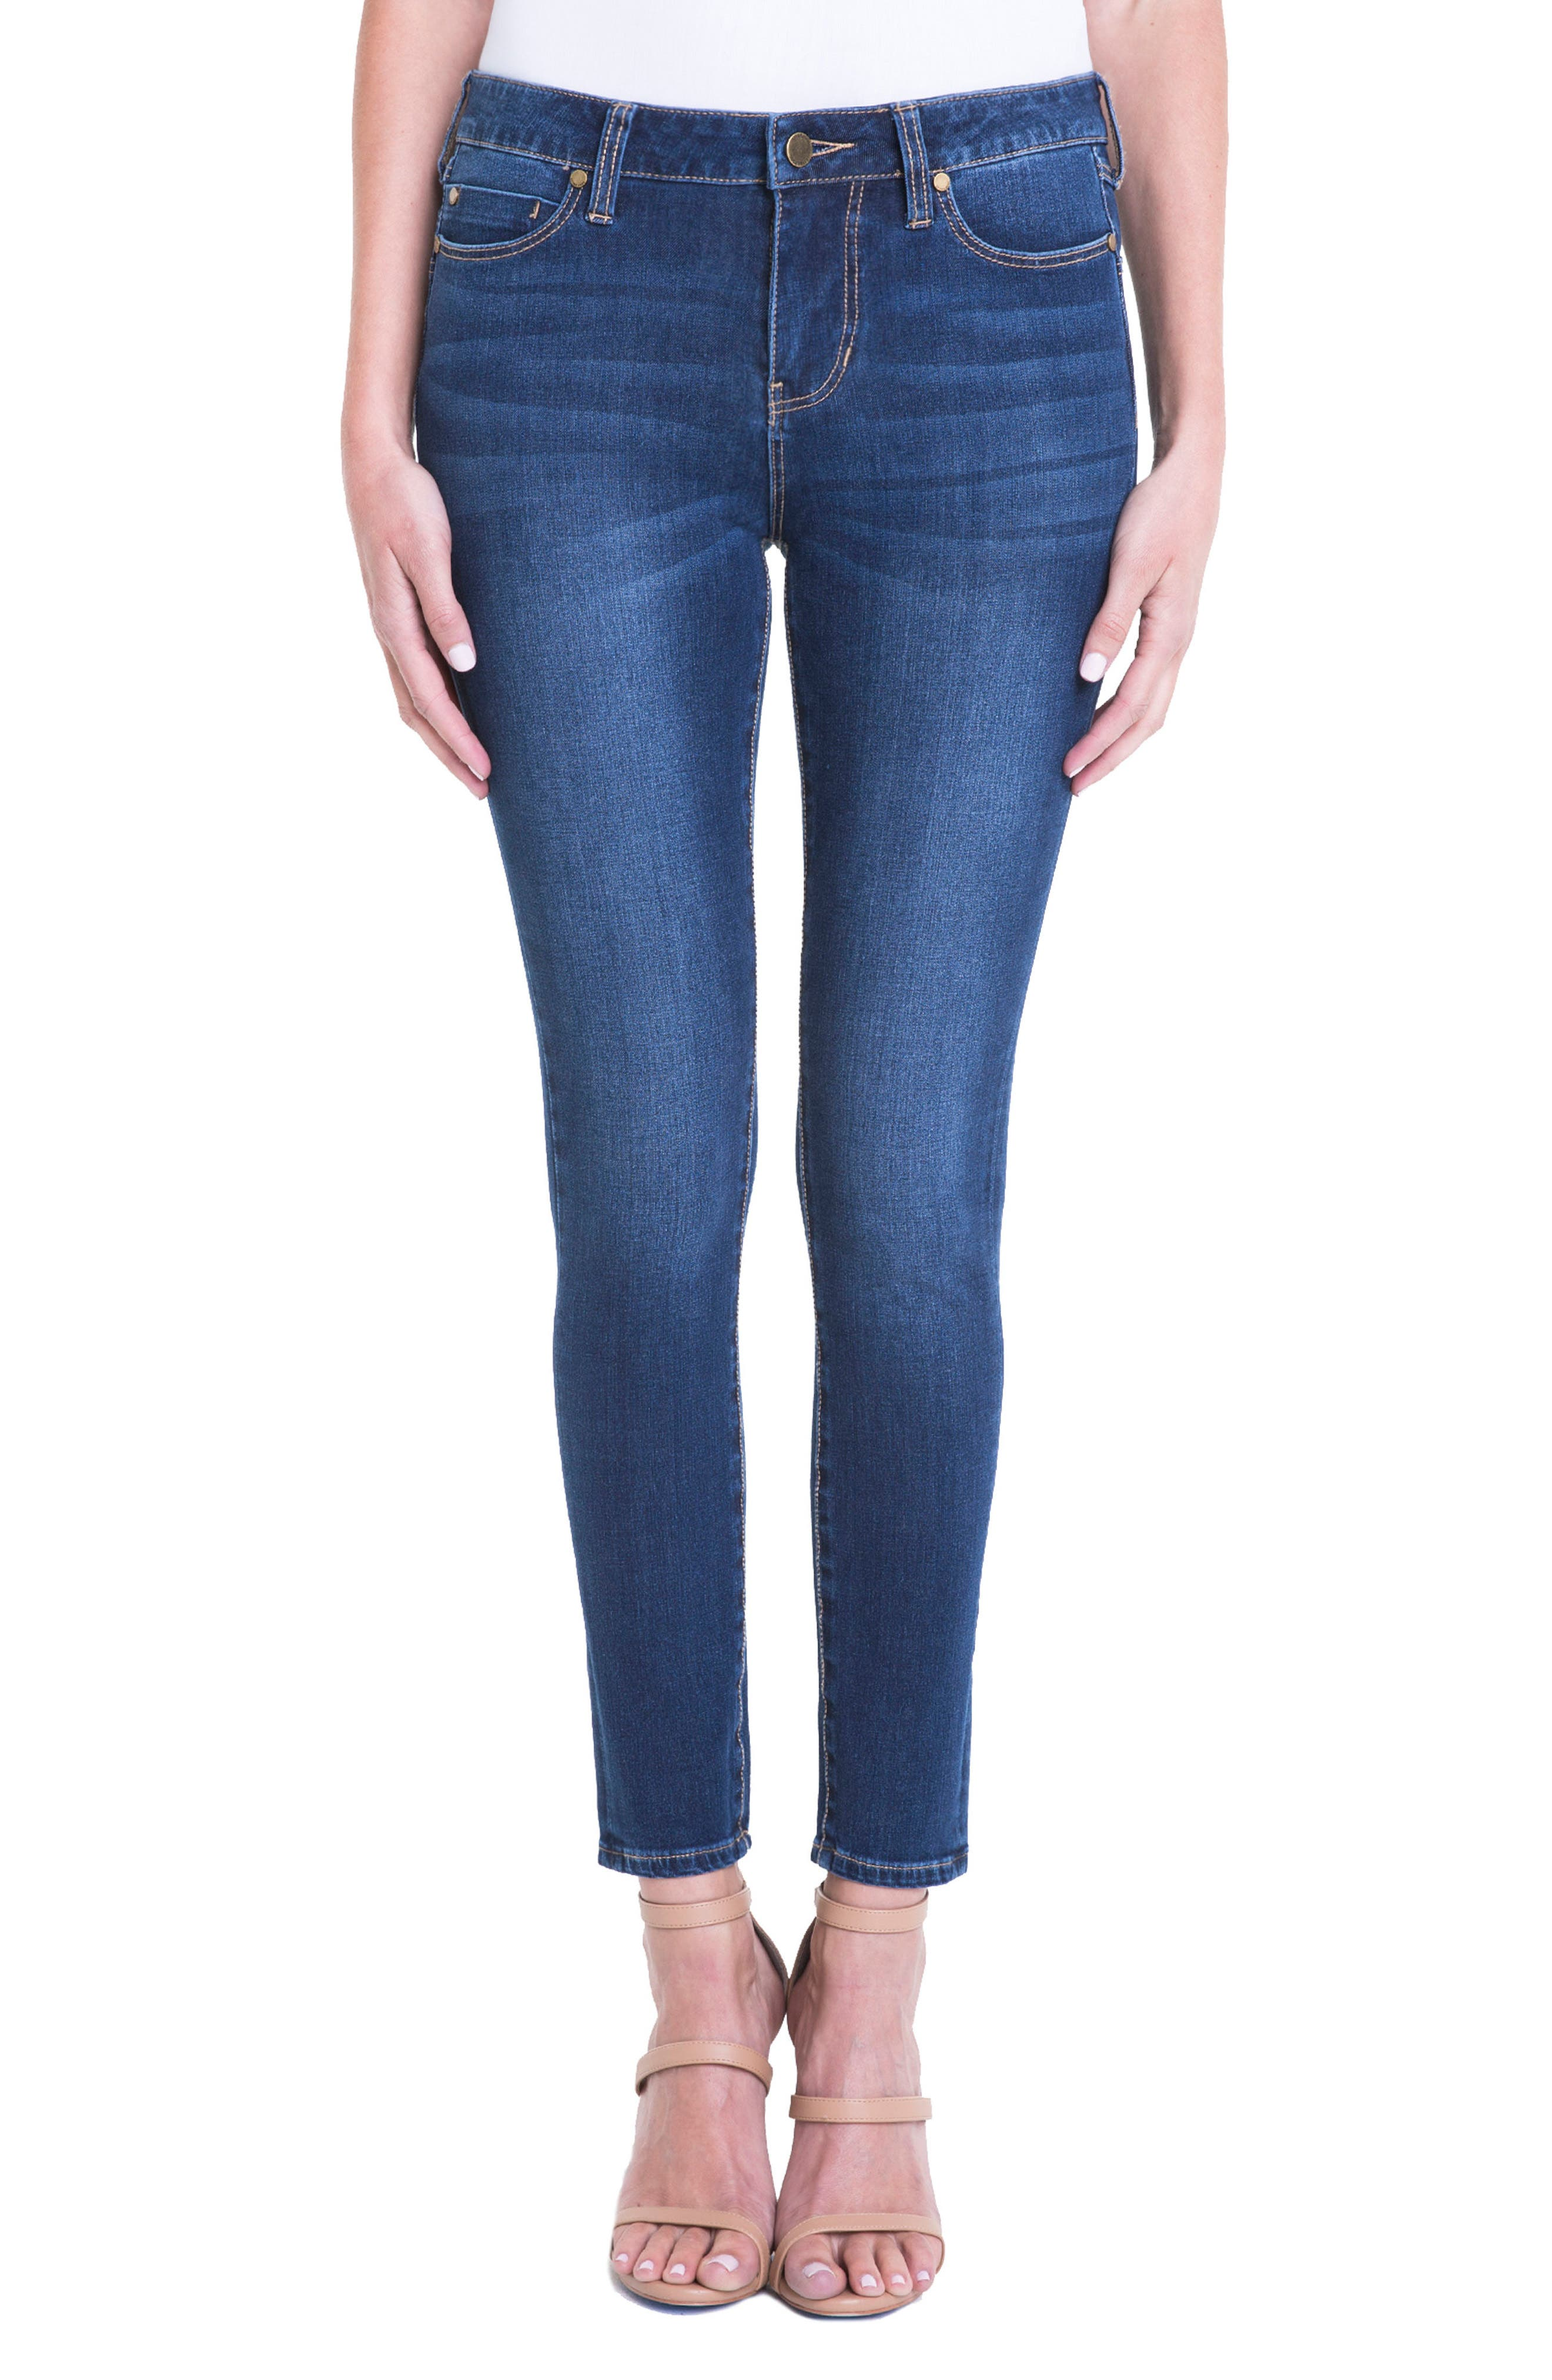 Jeans Company Piper Hugger Lift Sculpt Ankle Skinny Jeans,                         Main,                         color,